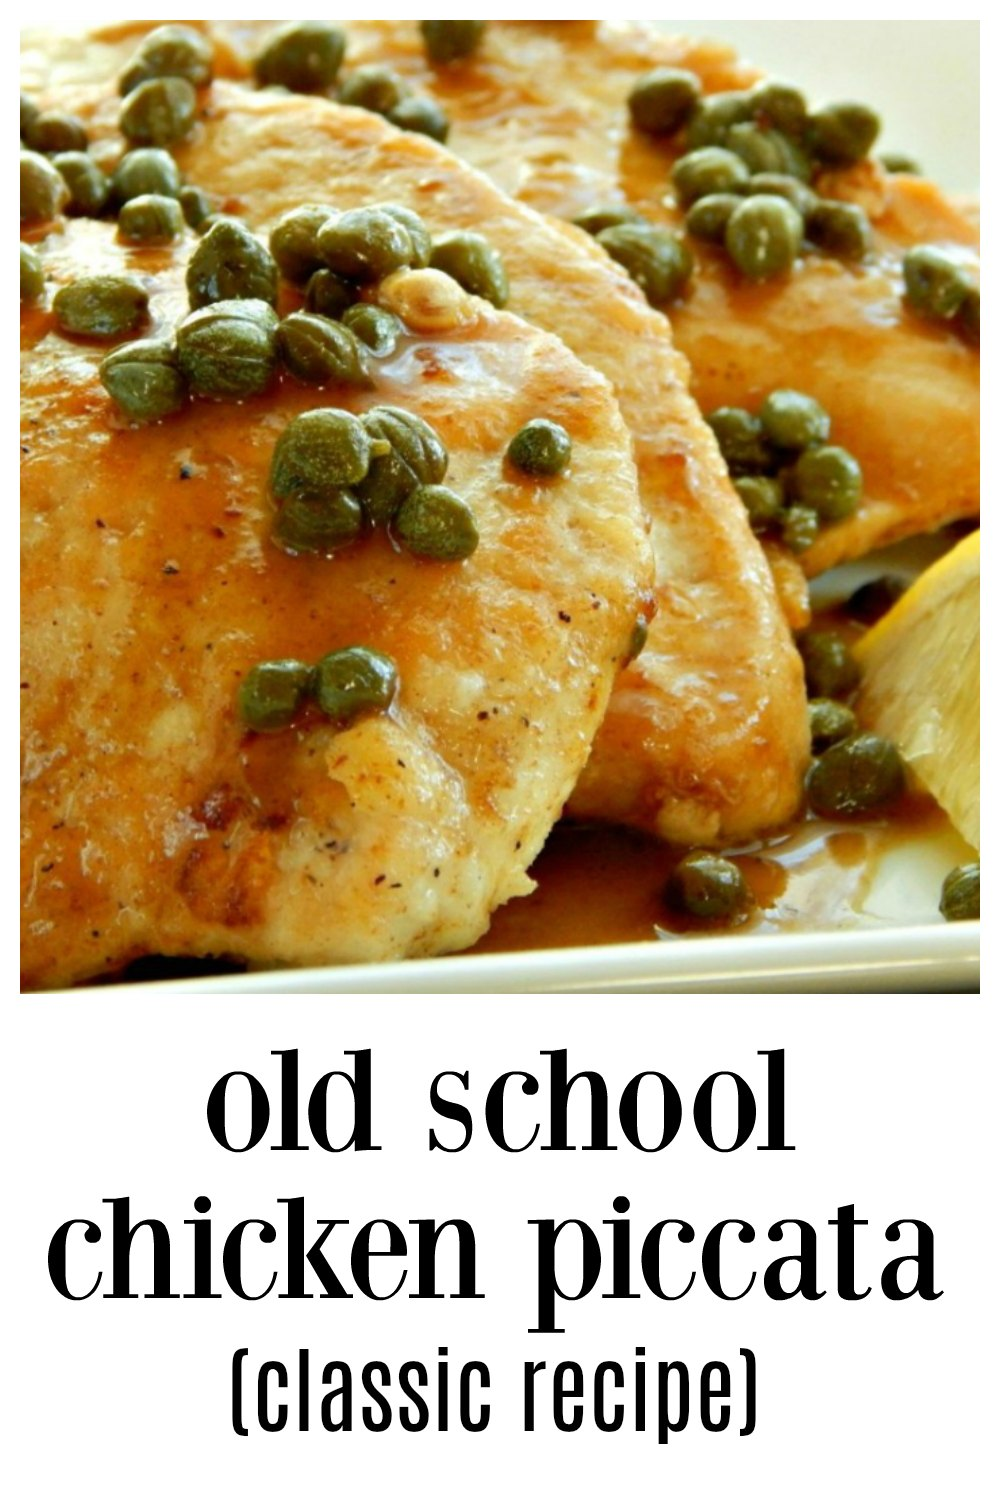 Old-School Classic Chicken Piccata is fast, easy & elegant and so delish! Lemon, capers, butter & a dash of wine make a vibrant, fresh dish. You'll look like a gourmet cook when you make this!! #ClassicChickenPiccata #ChickenPiccata #EasyChickenRecipe